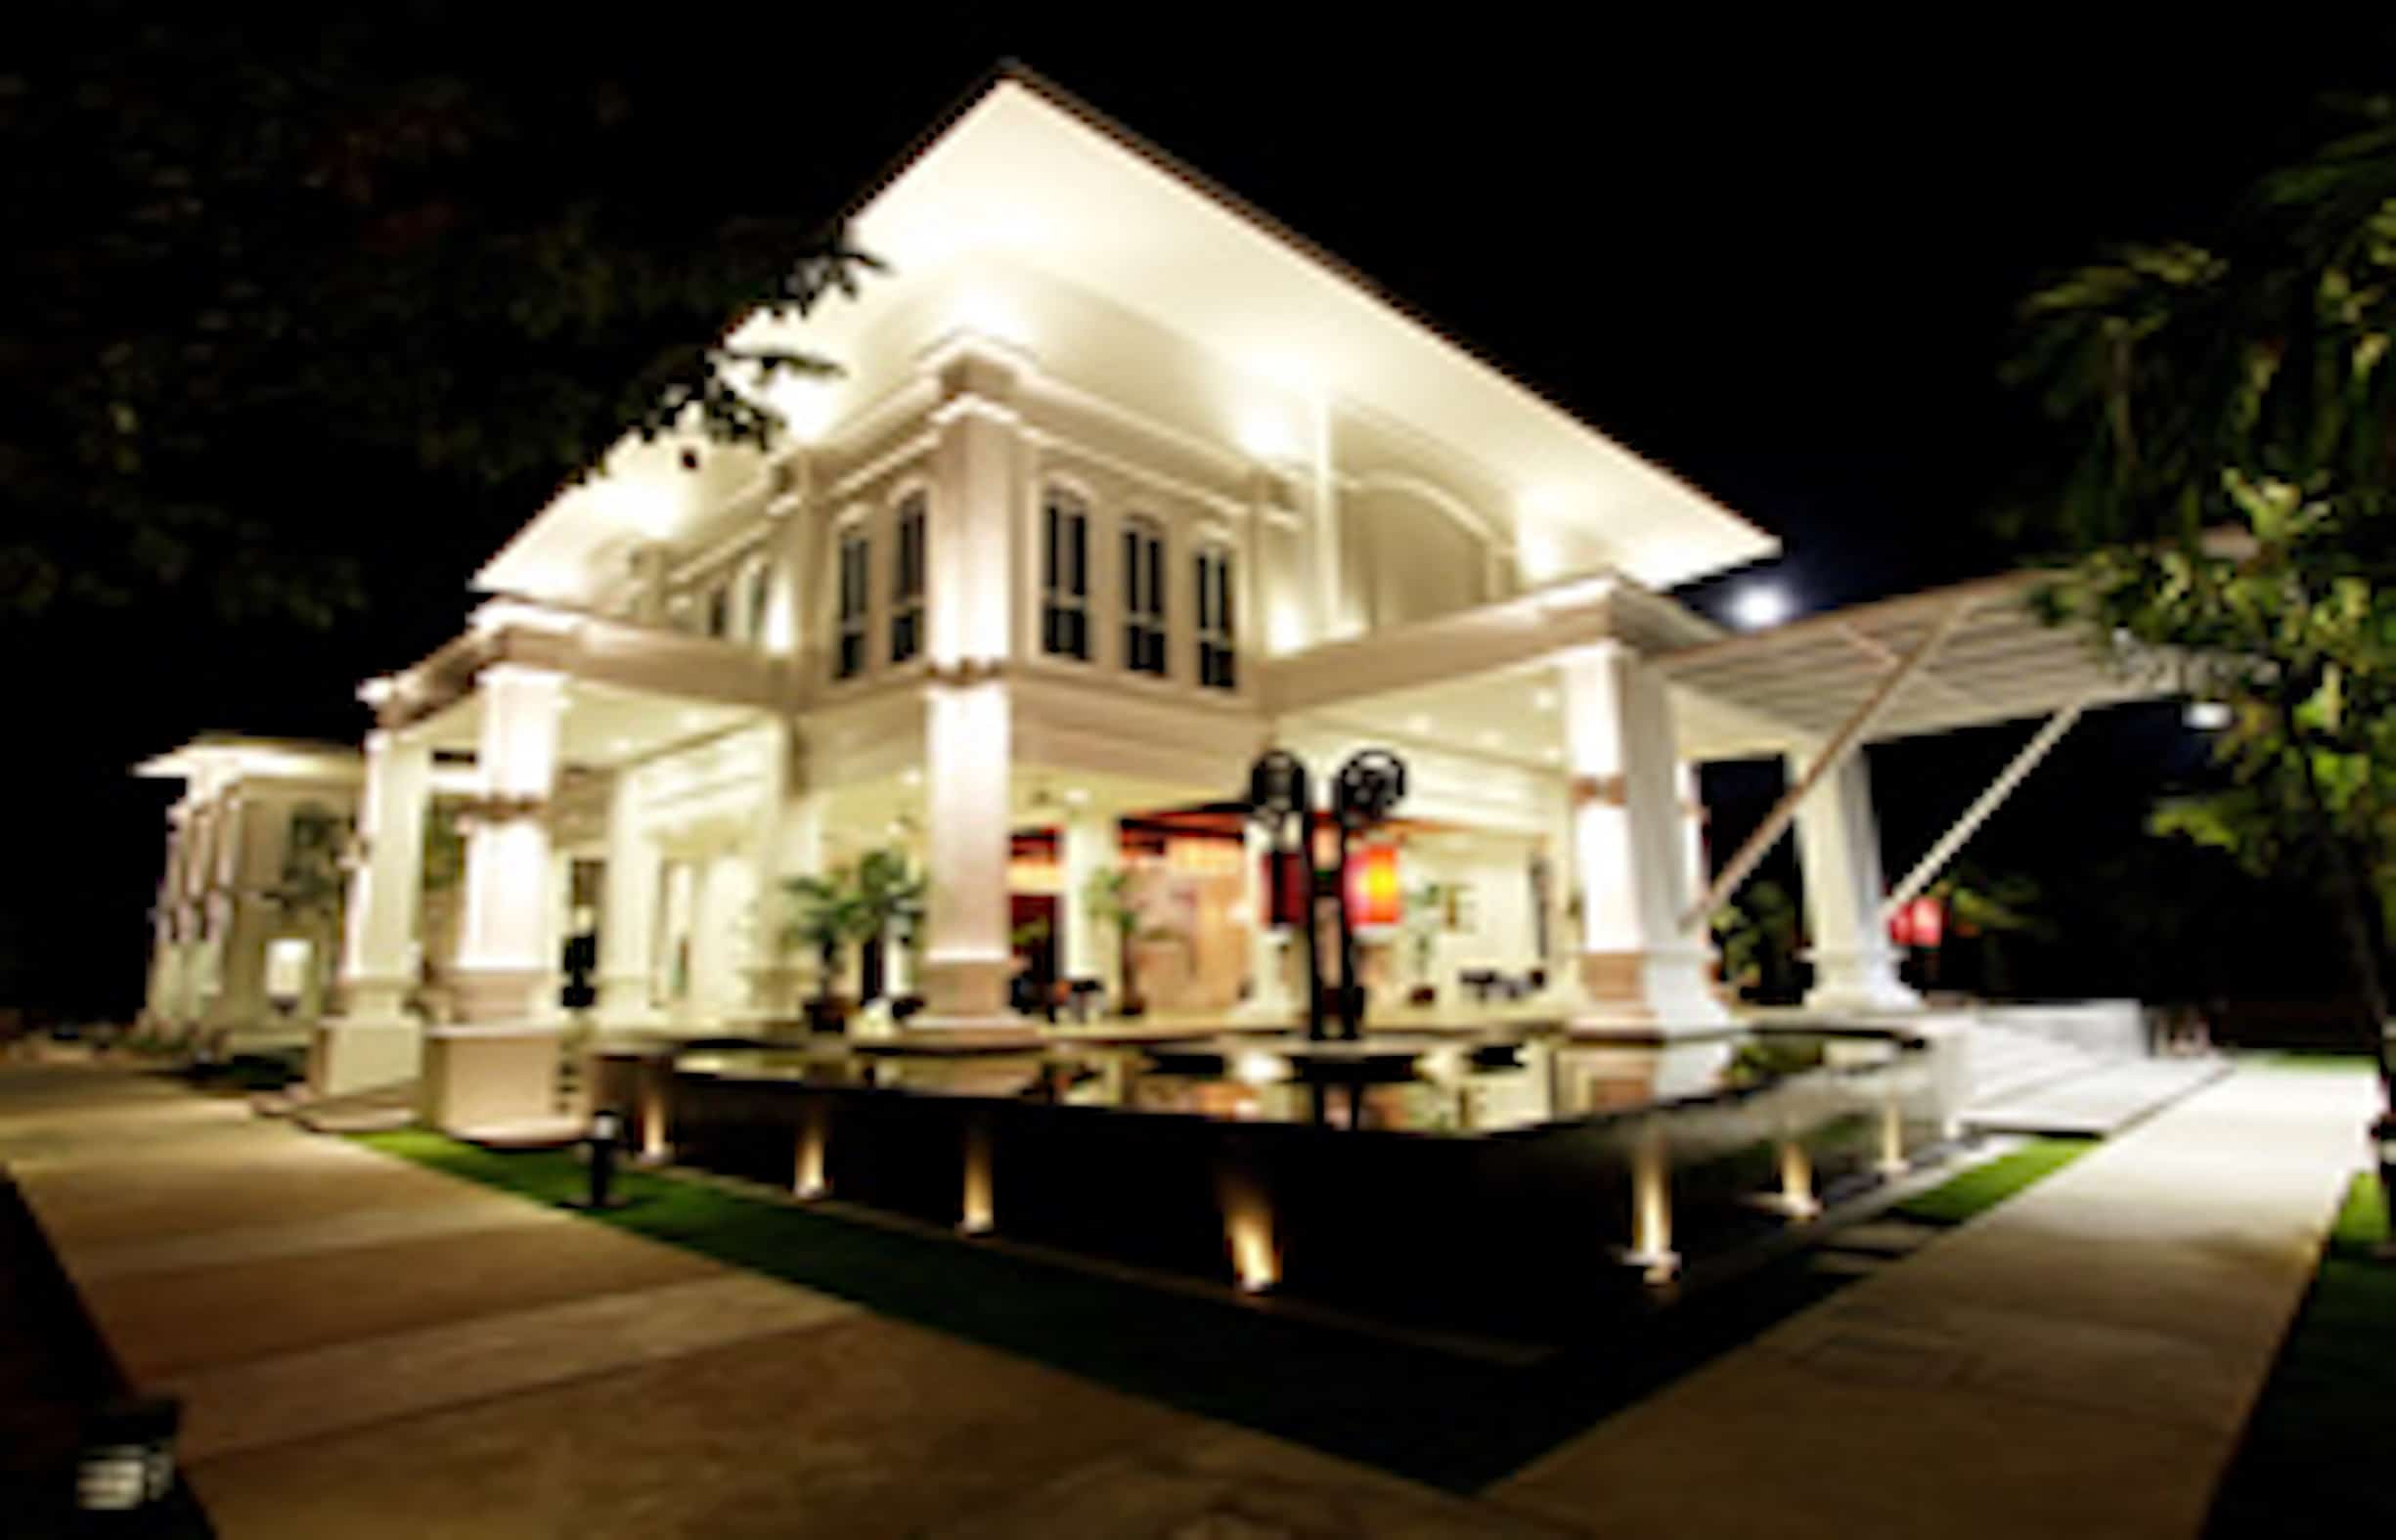 Phuket Hotels - The Old Phuket